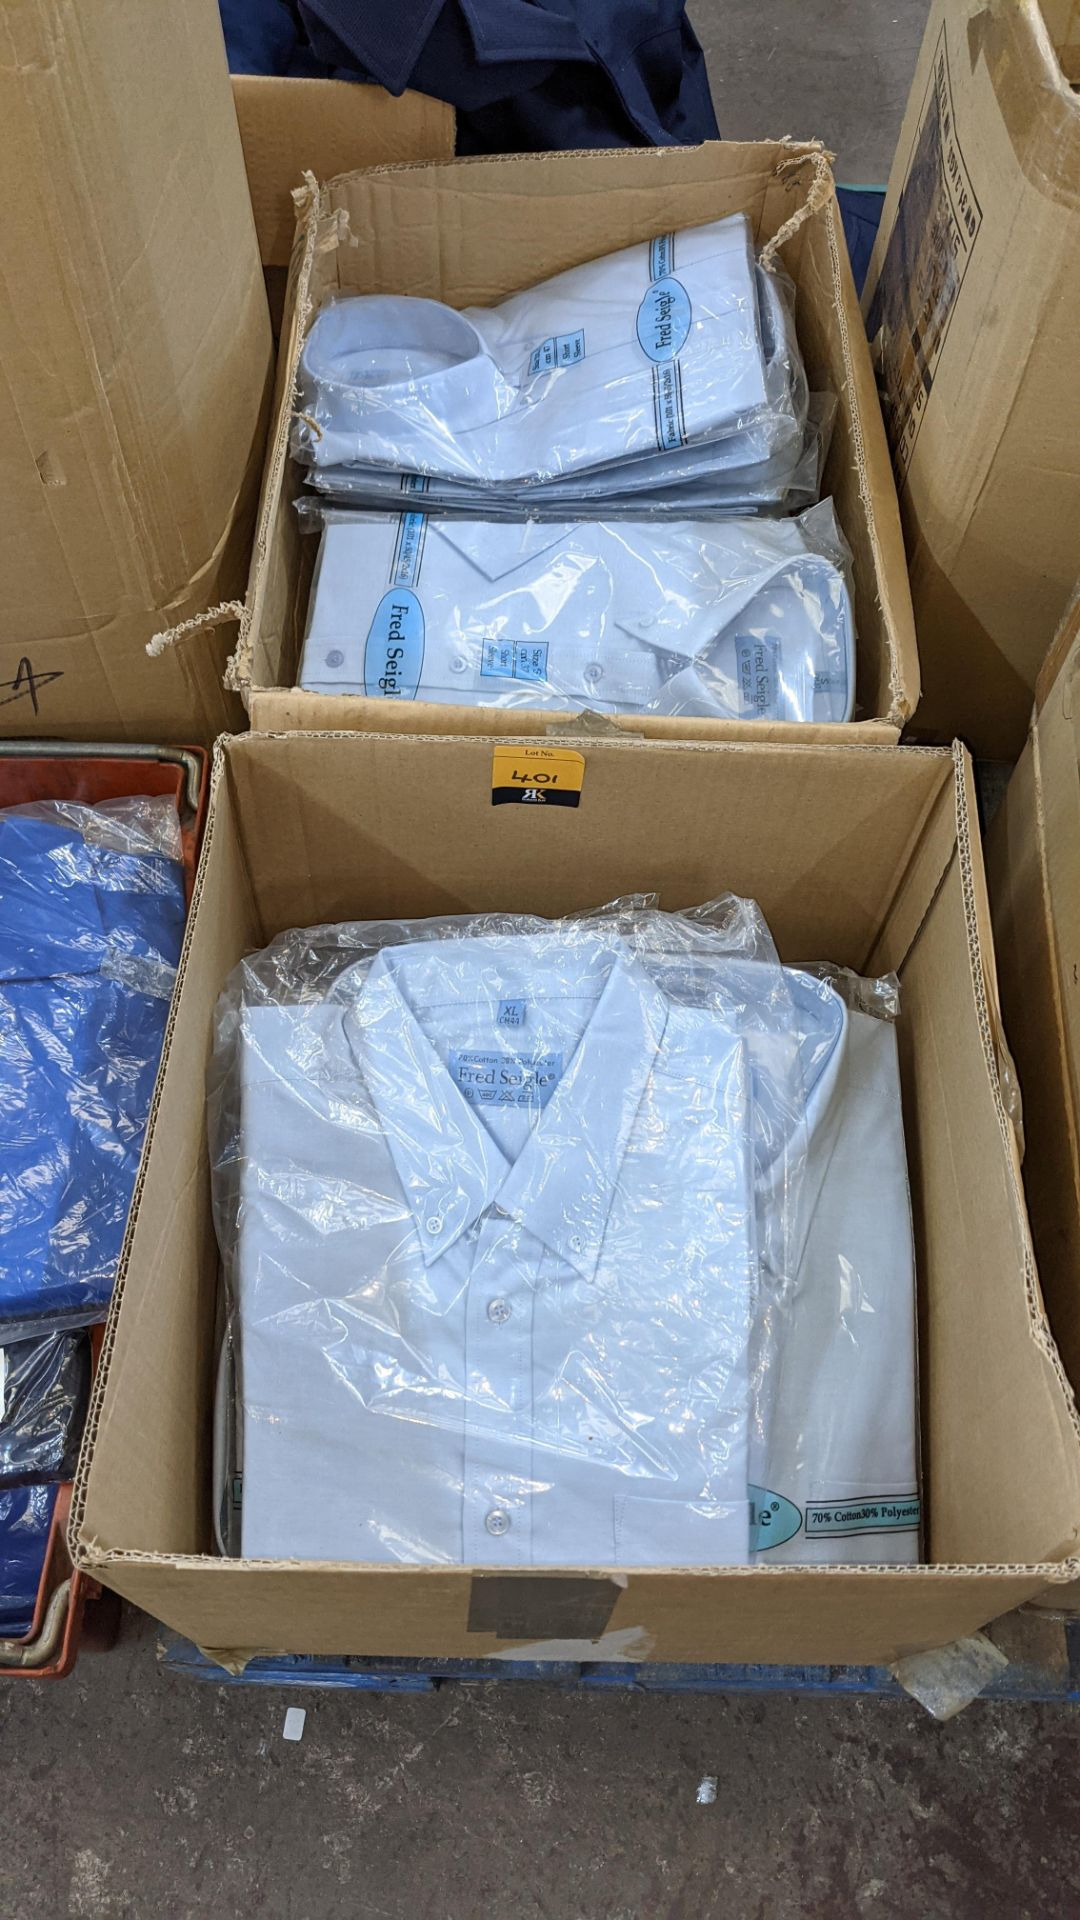 Quantity of Fred Seigle pale blue button down shirts (2 boxes)